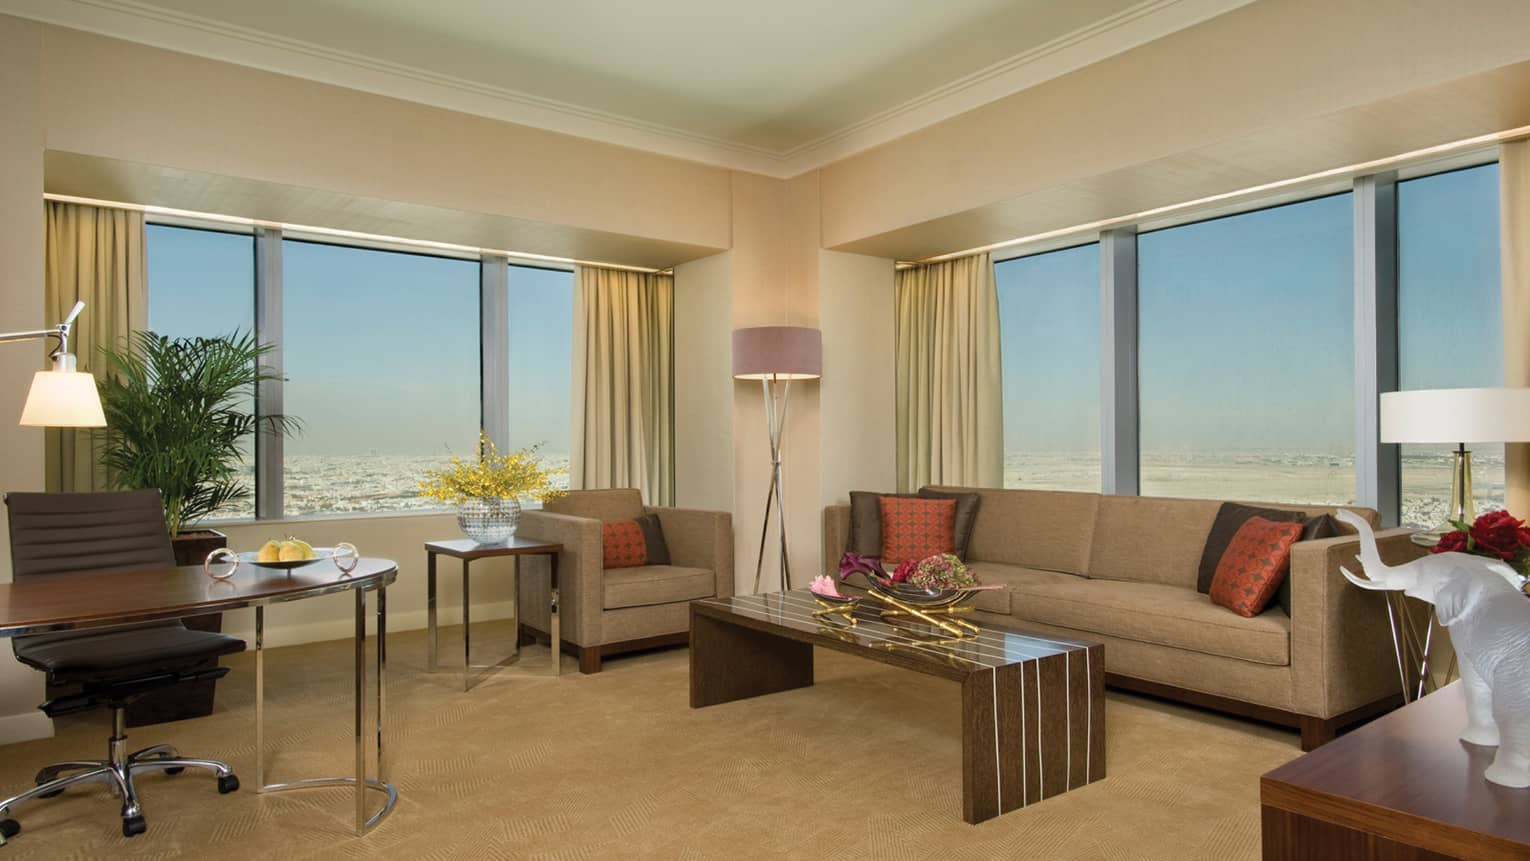 Large corner suite living room with sunny windows and city views, beige sofa and armchair, long wood coffee table